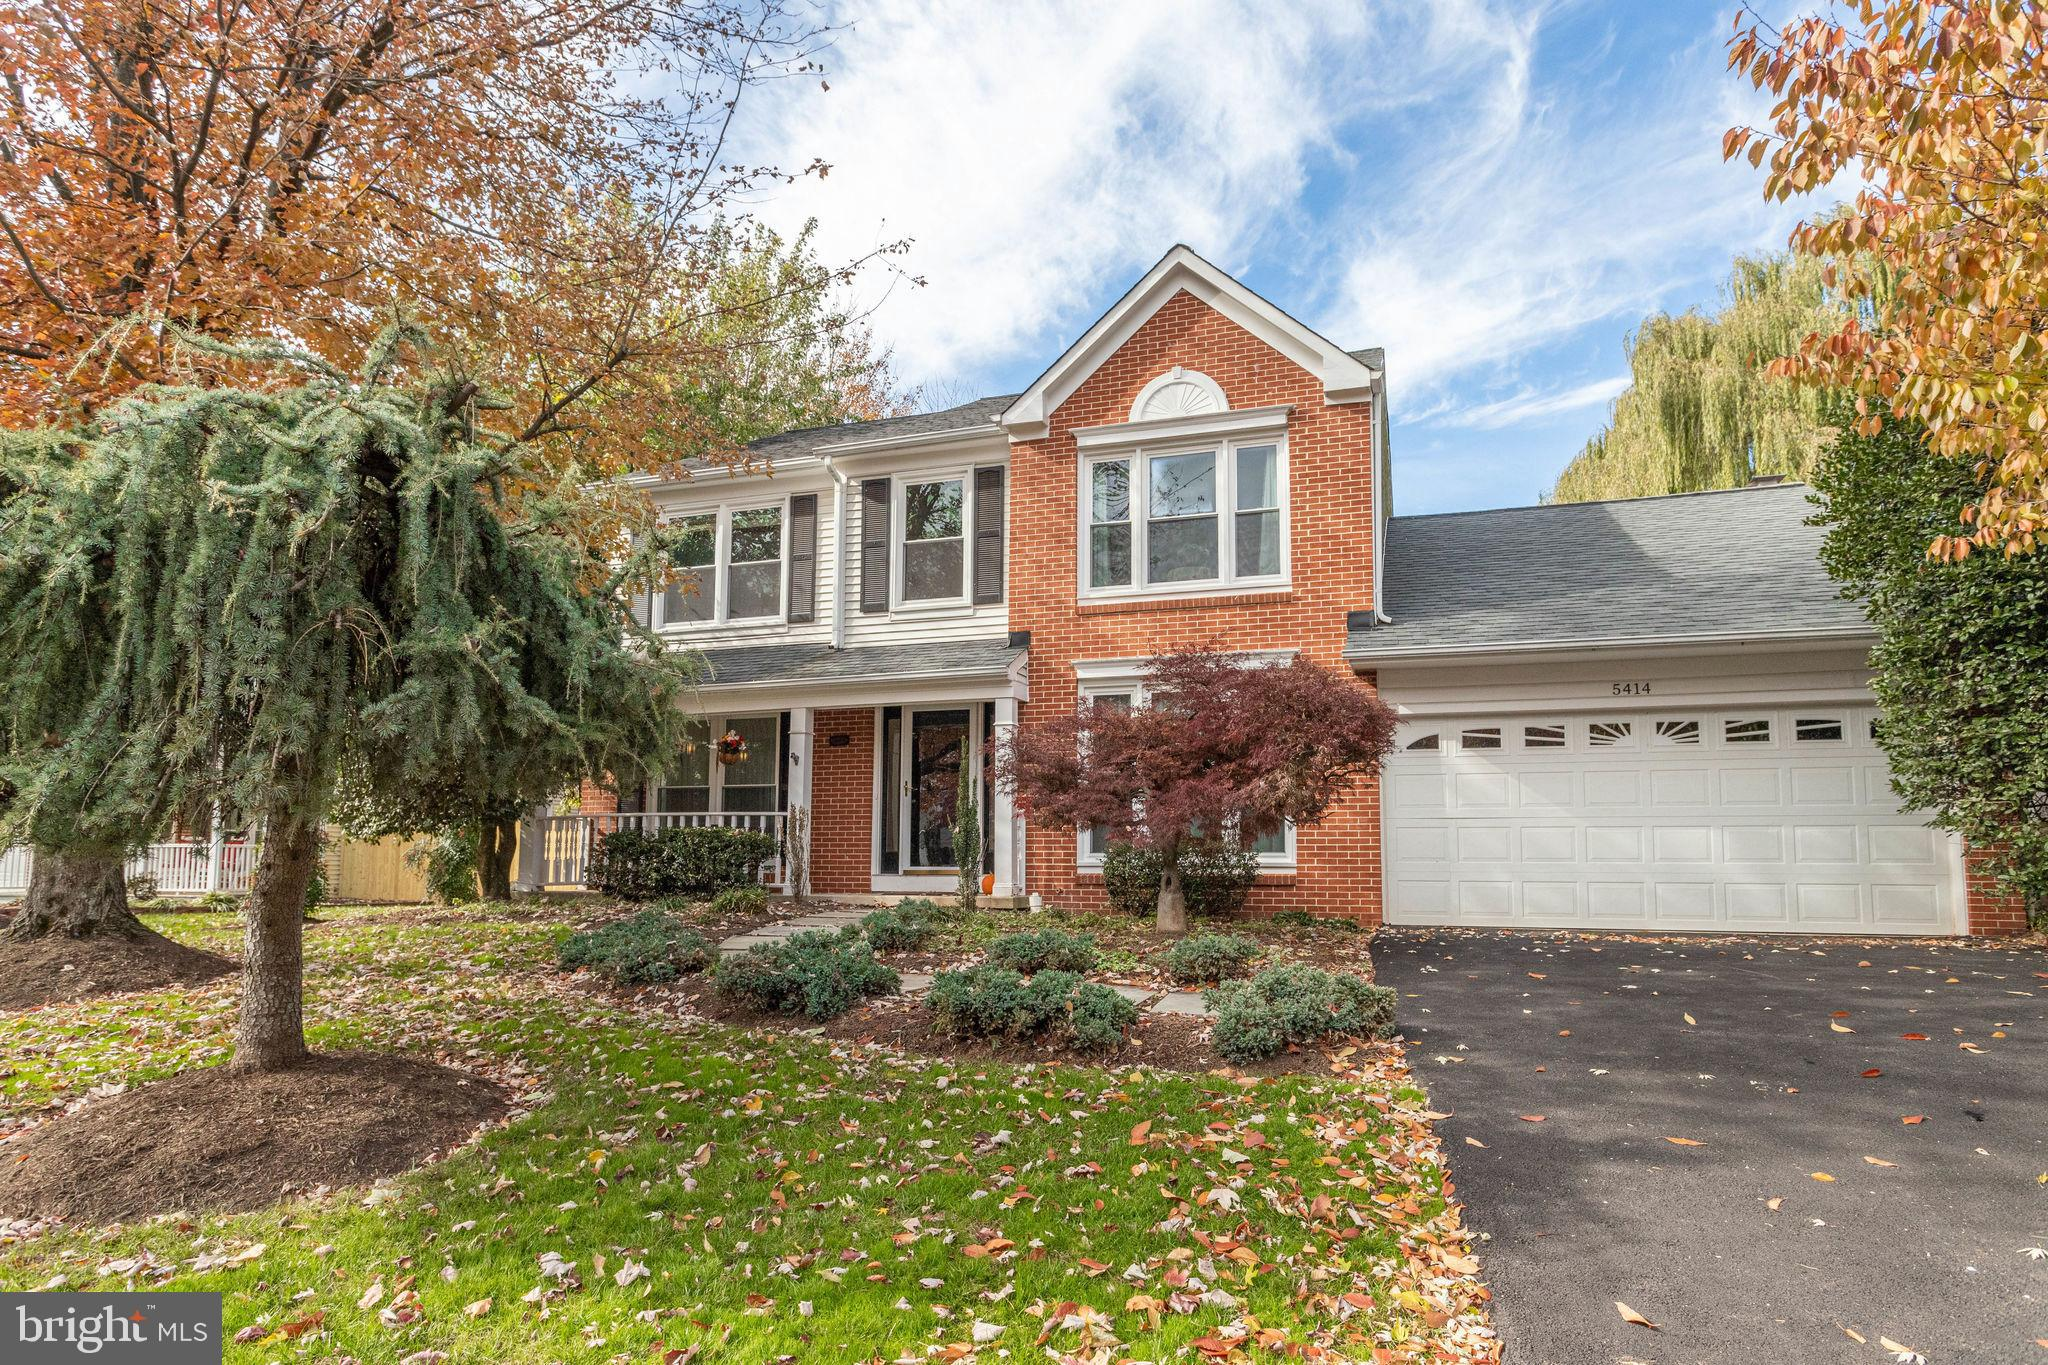 Create many Memories in this 4 Bedroom, 3.5 Bath, 2 car garage, 3 level Colonial home with sparkling